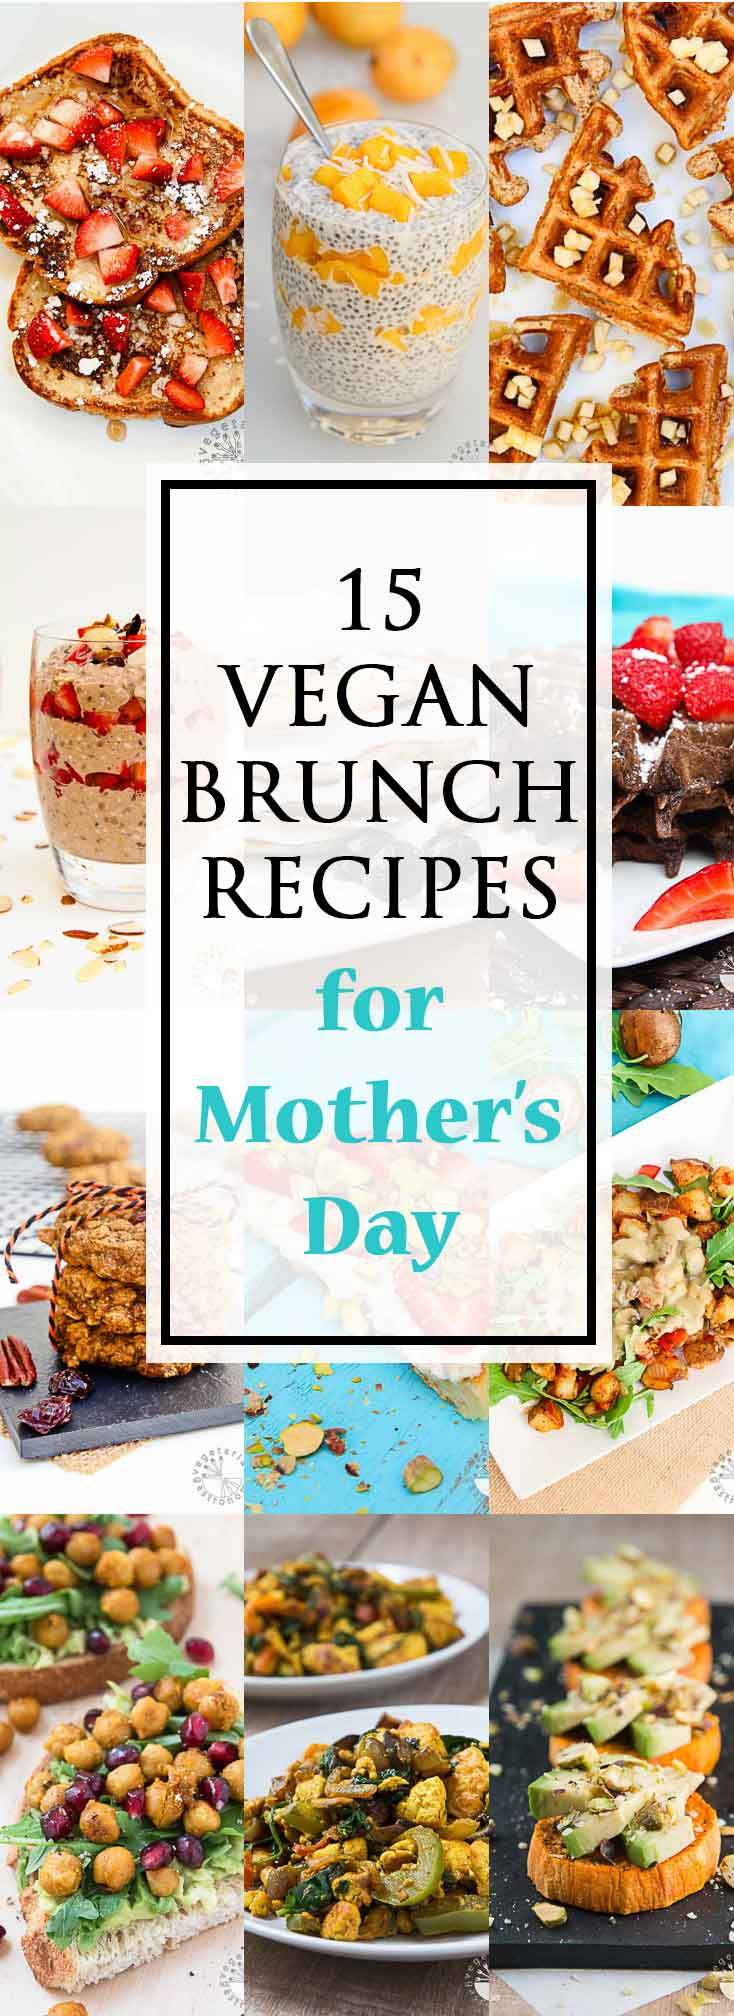 Vegan Brunch Recipes for Mother's Day #vegan #glutenfree | Vegetarian Gastronomy | www.VegetarianGastronomy.com